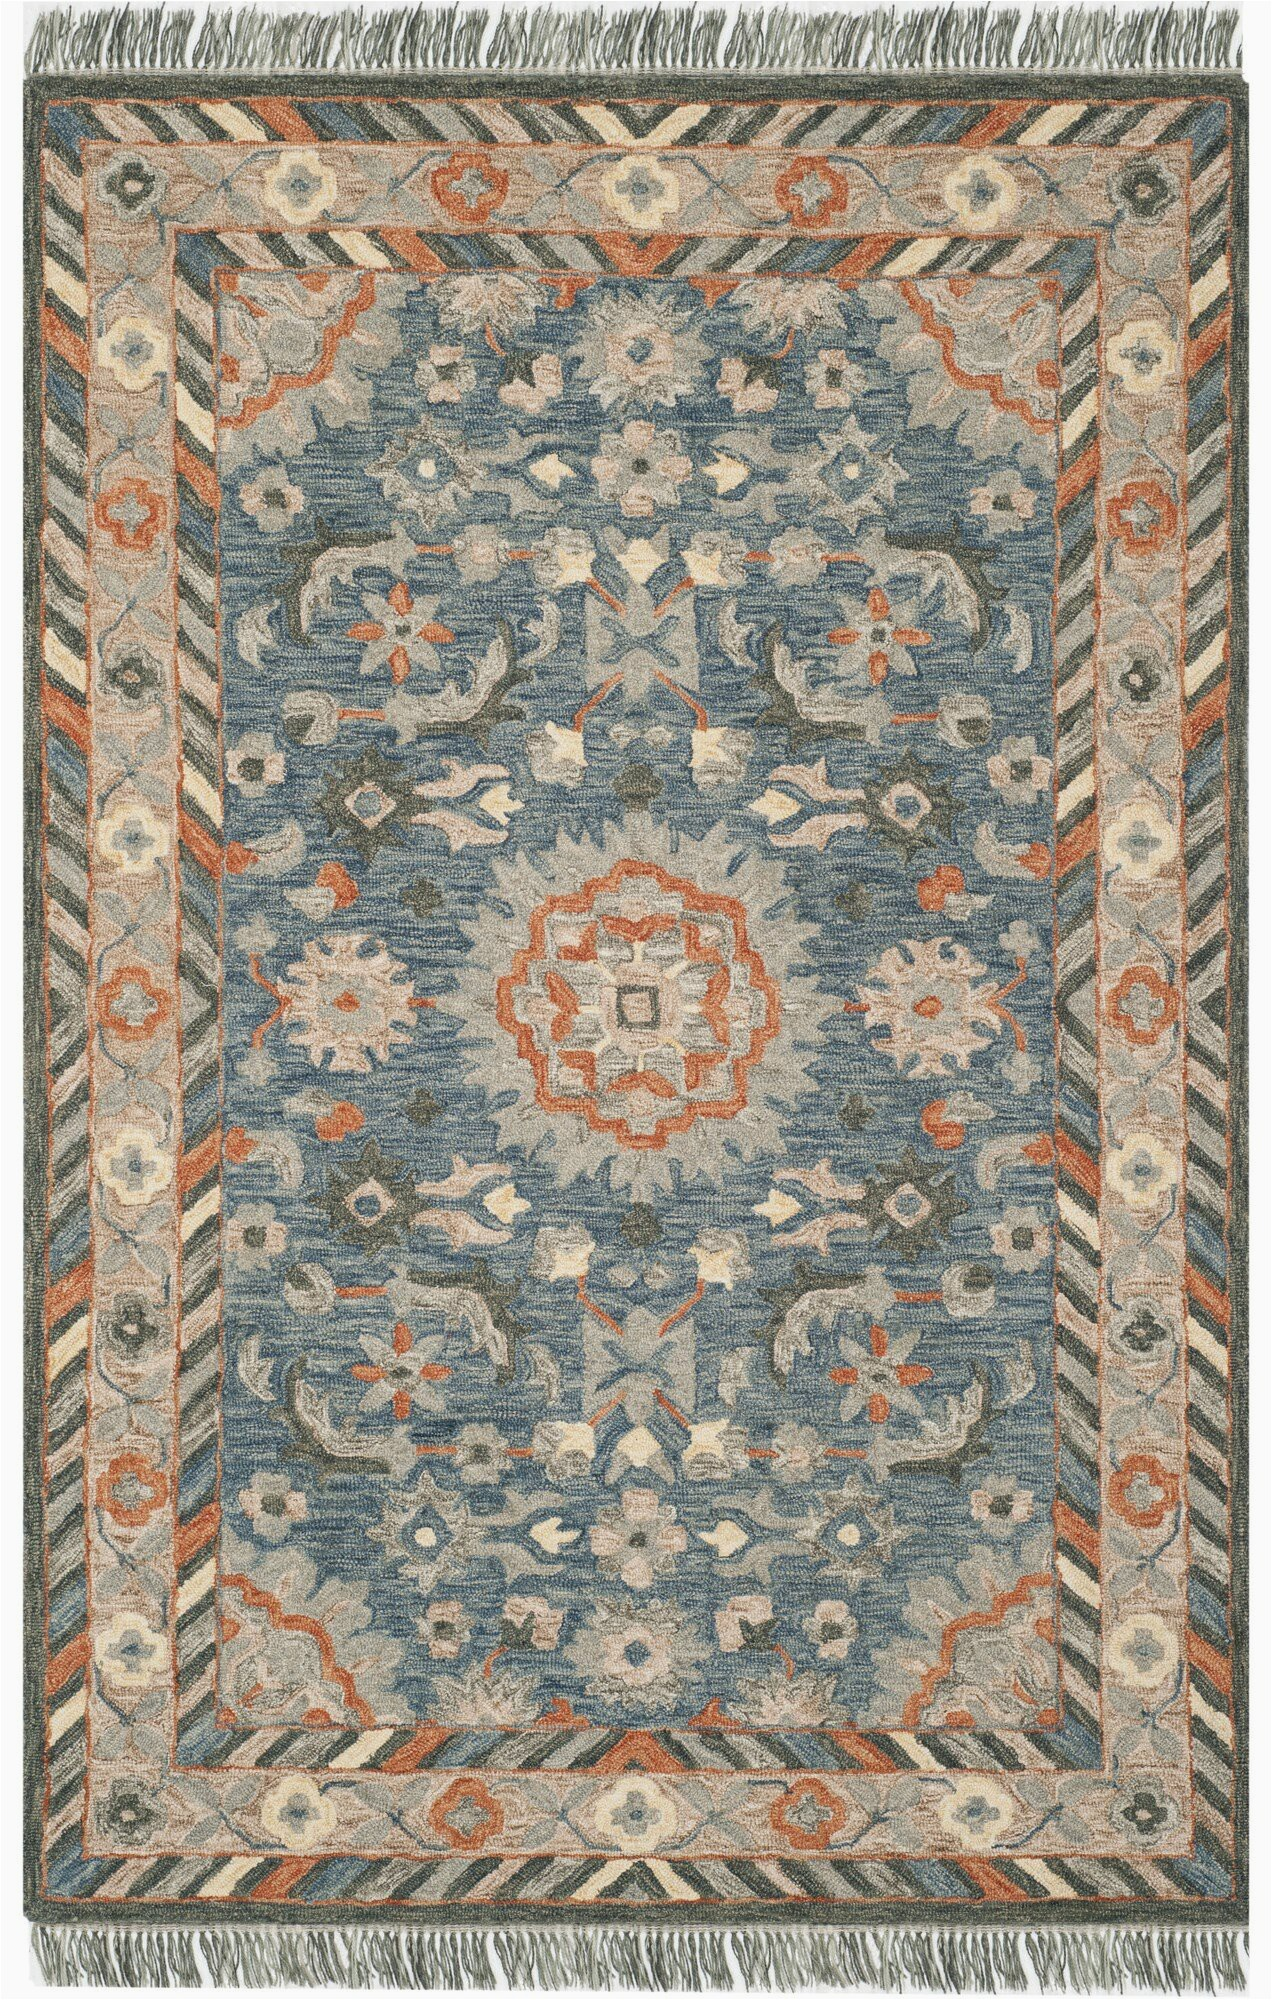 bungalow rose gooden hand tufted wool blue area rug bnrs7259 piid=